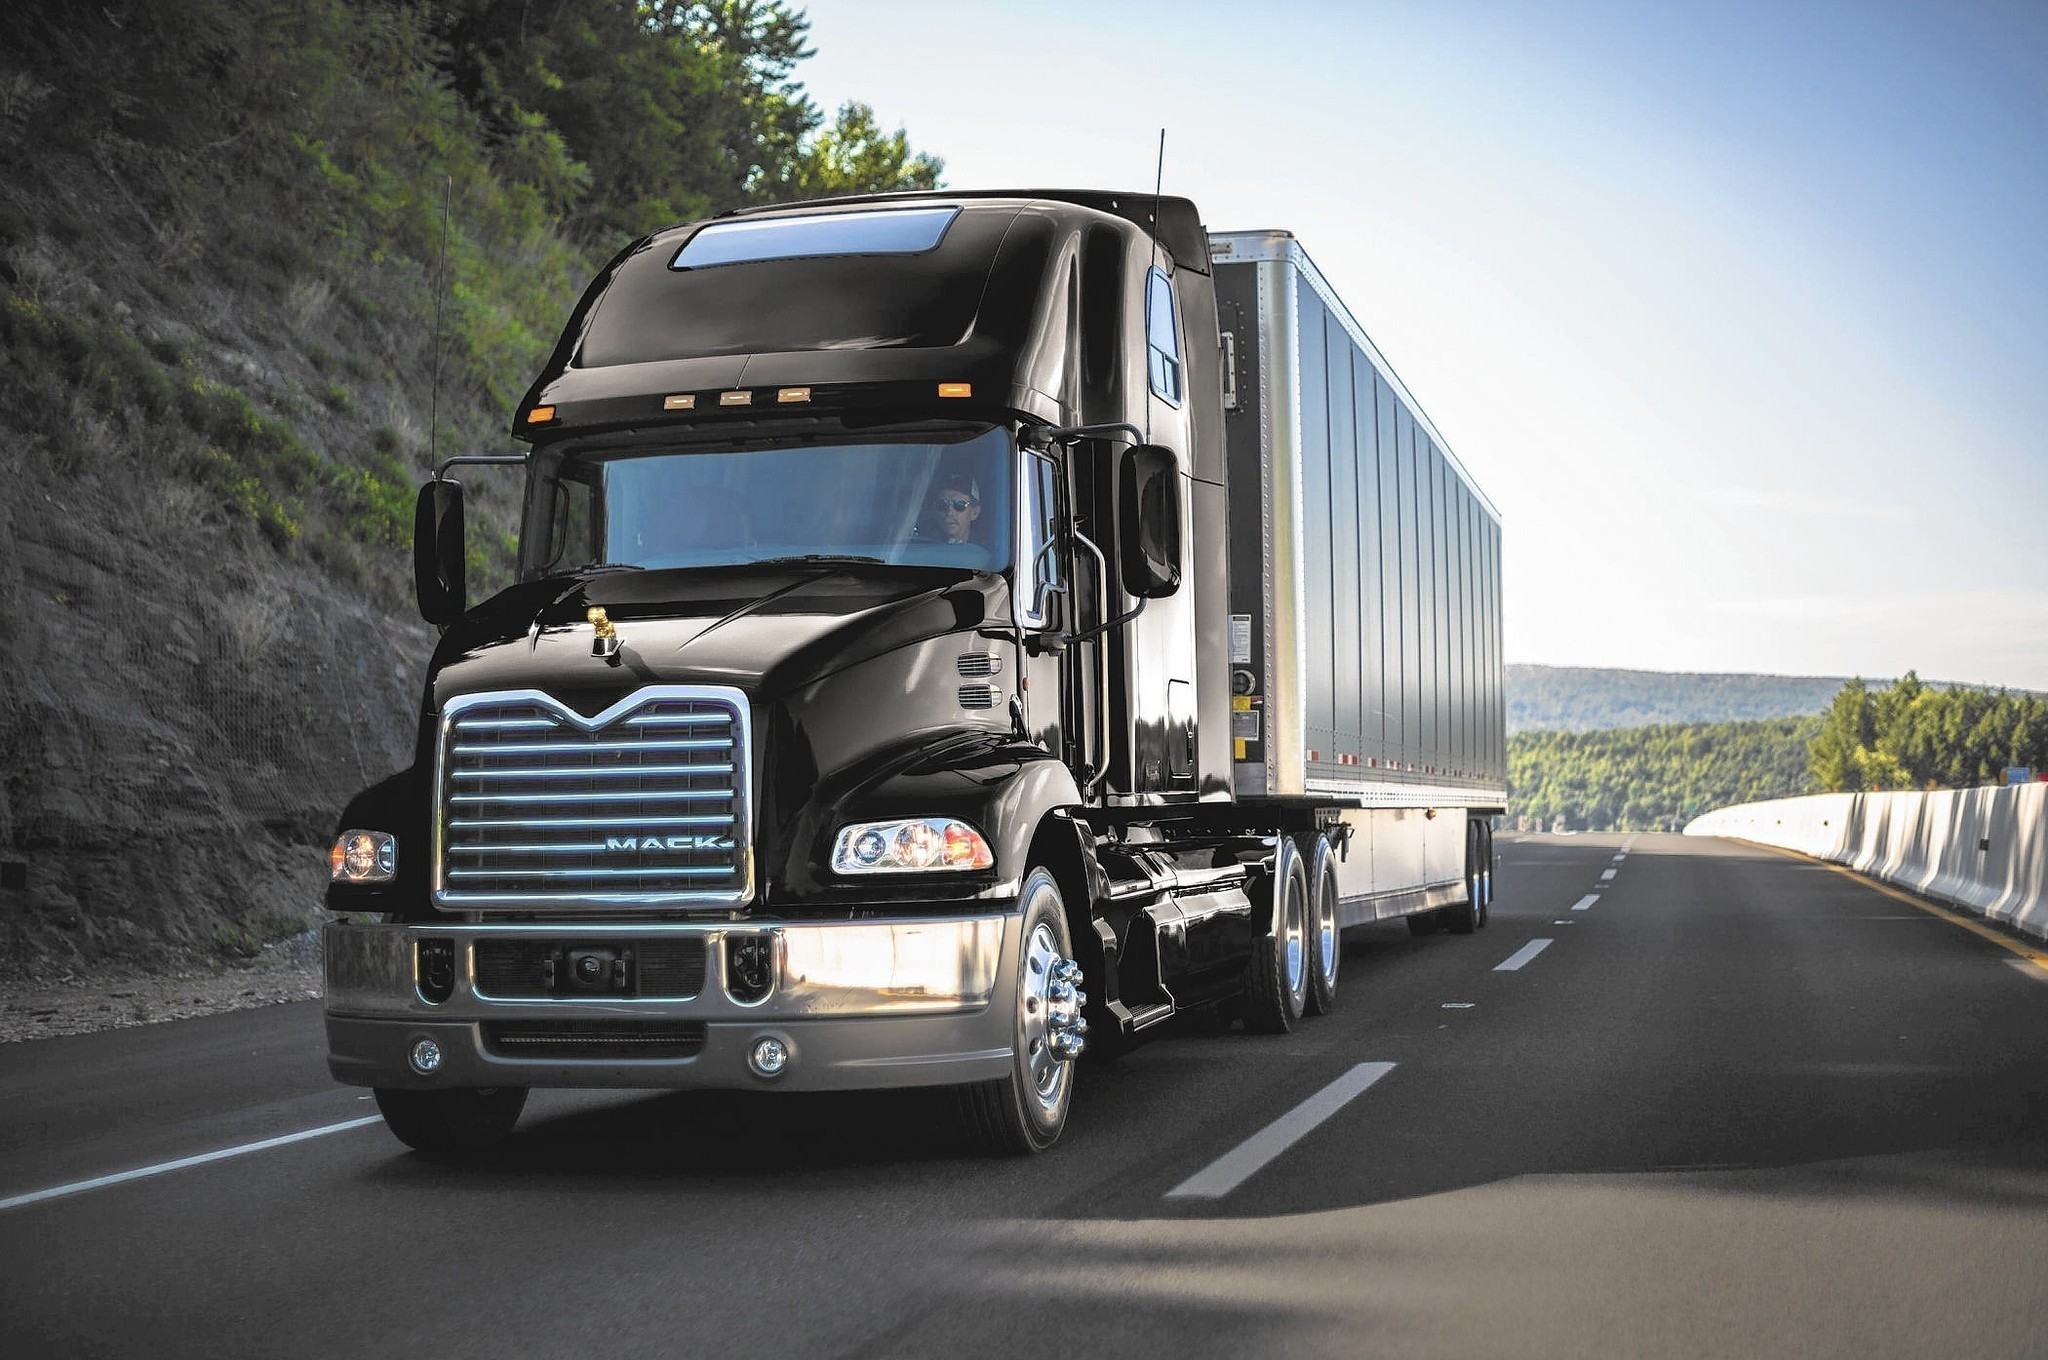 Mack investing $70 million in Lower Macungie plant - The Morning Call